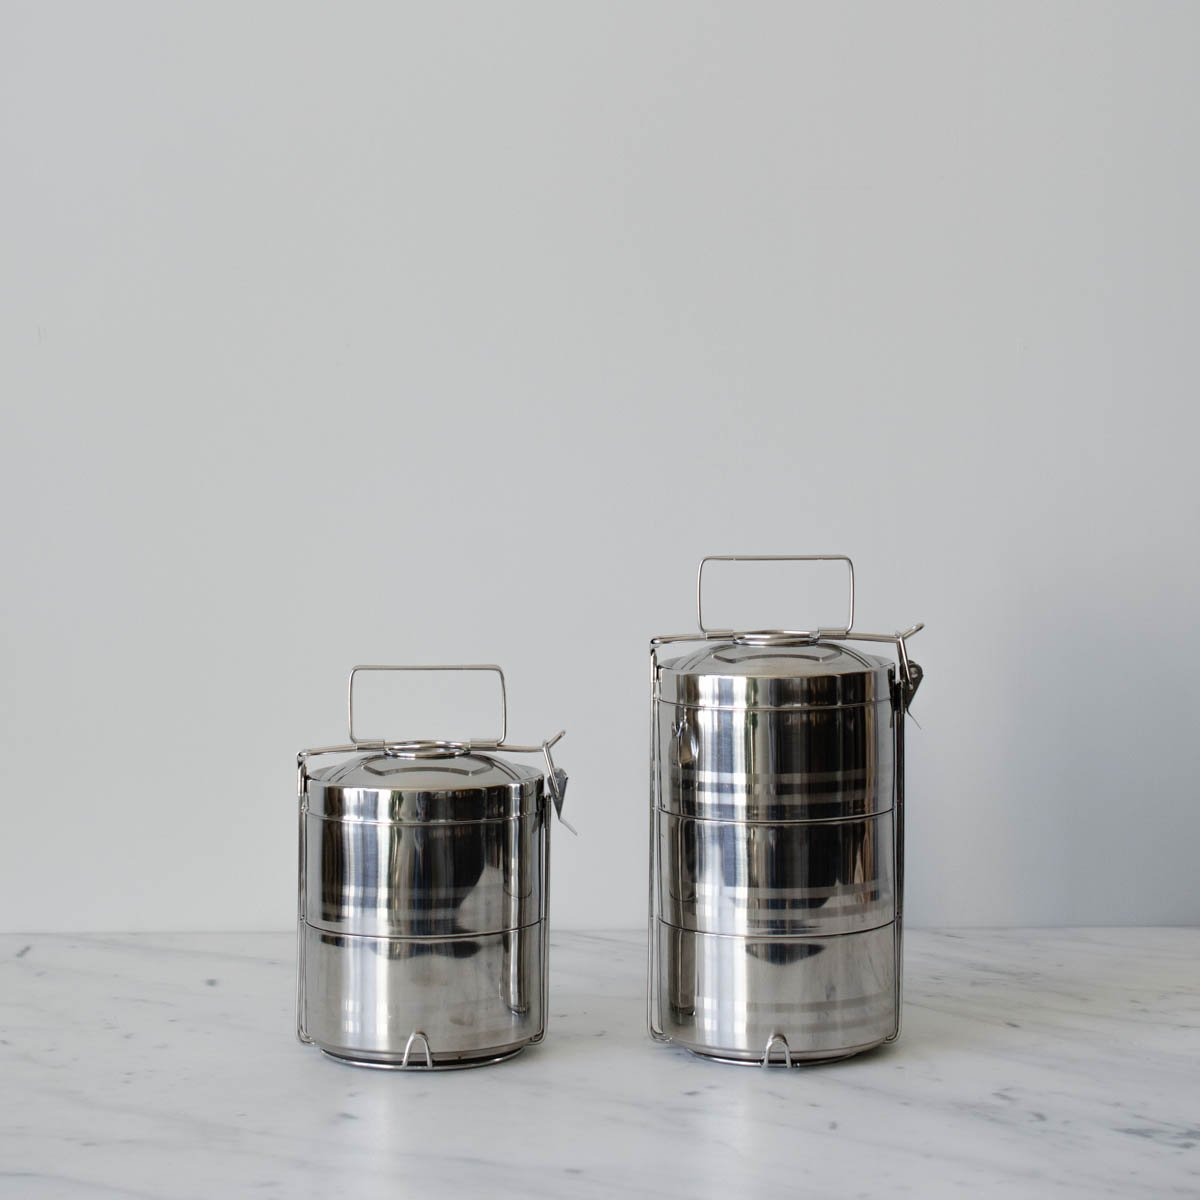 Mur Lifestyle  Stainless steel Tiffin tin, From $24